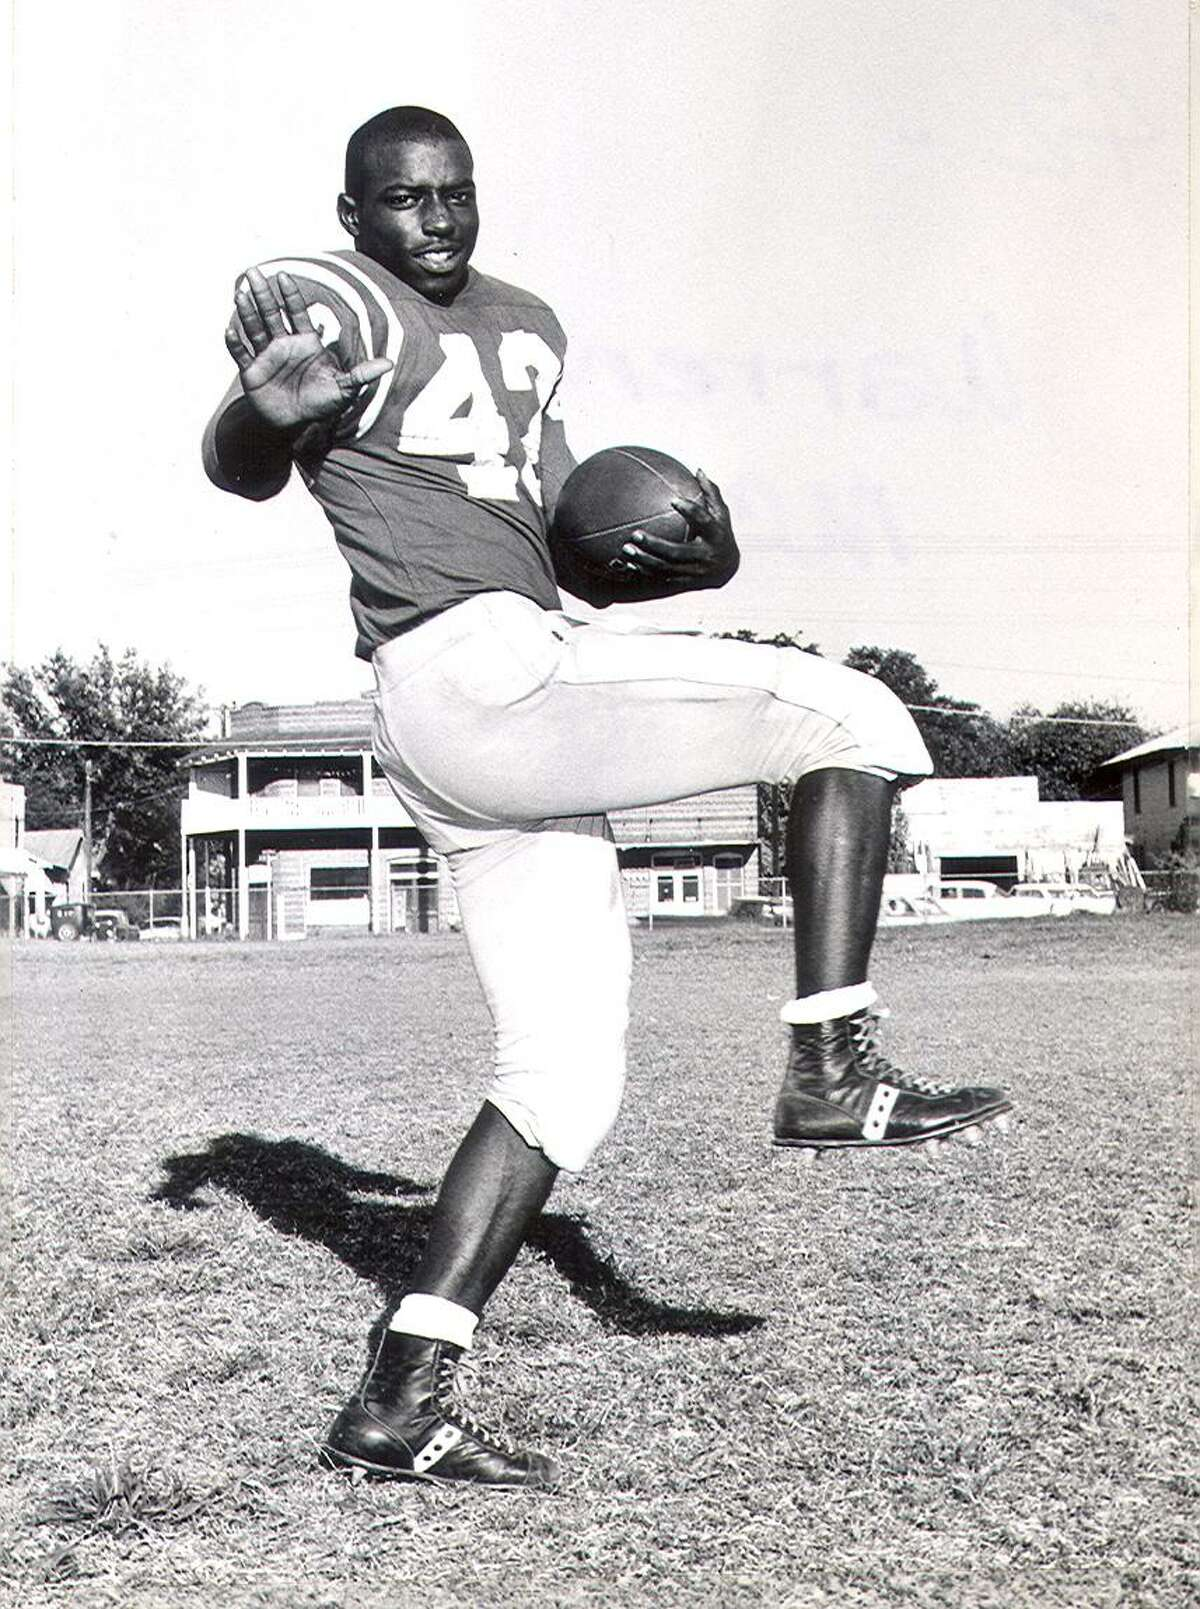 Brackenridge High School Warren McVea McVea, the first black football player at the University of Houston, rushed for 500 yards and seven touchdowns with Kansas City in 1970. The Chiefs won the Super Bowl that season. Honorable mention: Sam Hurd (NFL wide receiver 2006-2011)